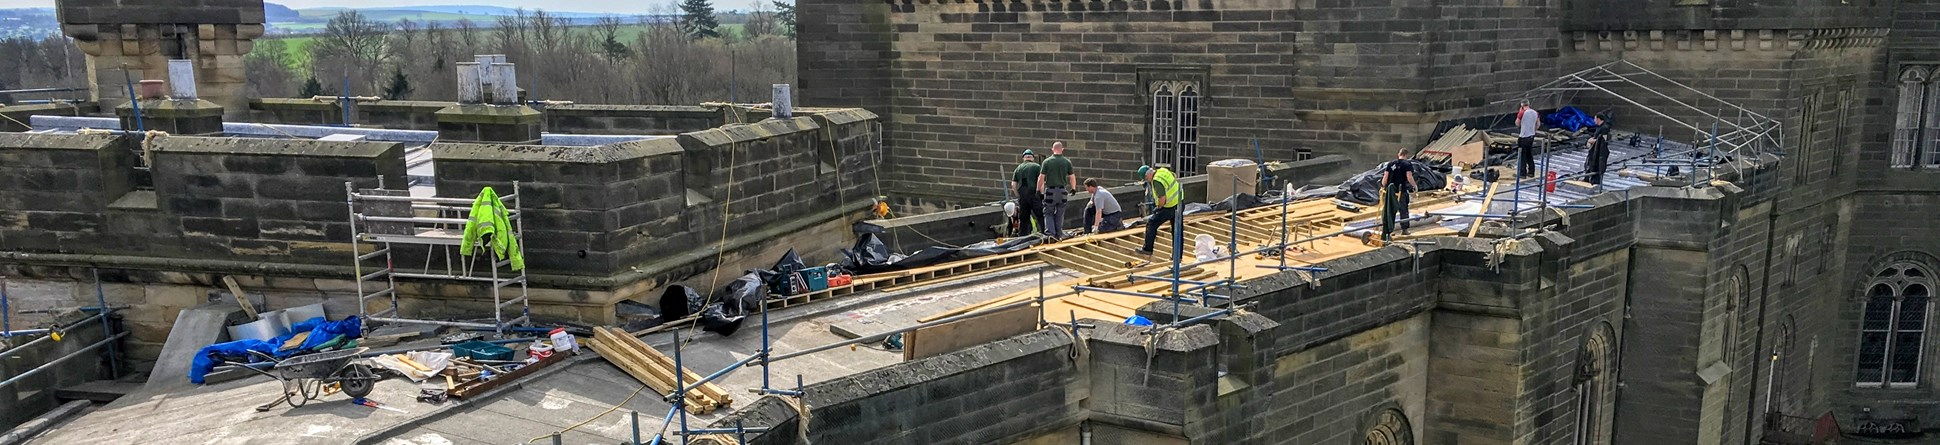 Repairs to Brancepeth Castle's roof and stonework underway.